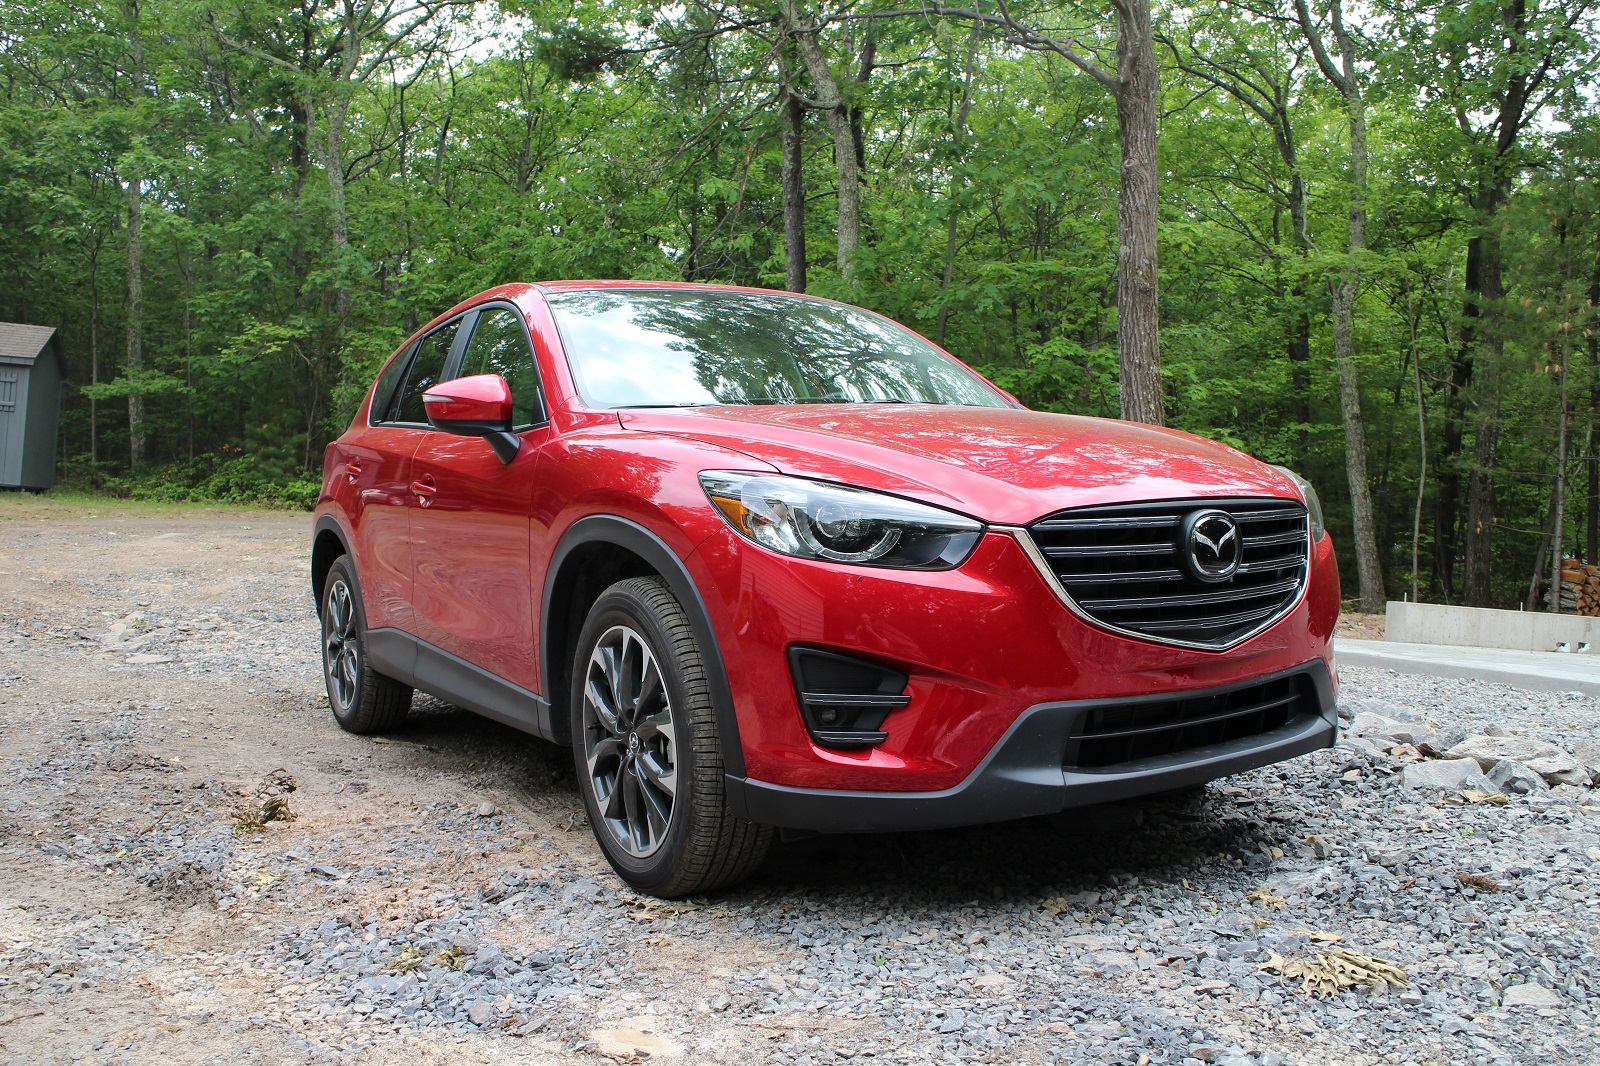 2016 mazda cx 5 grand touring gas mileage review of small suv